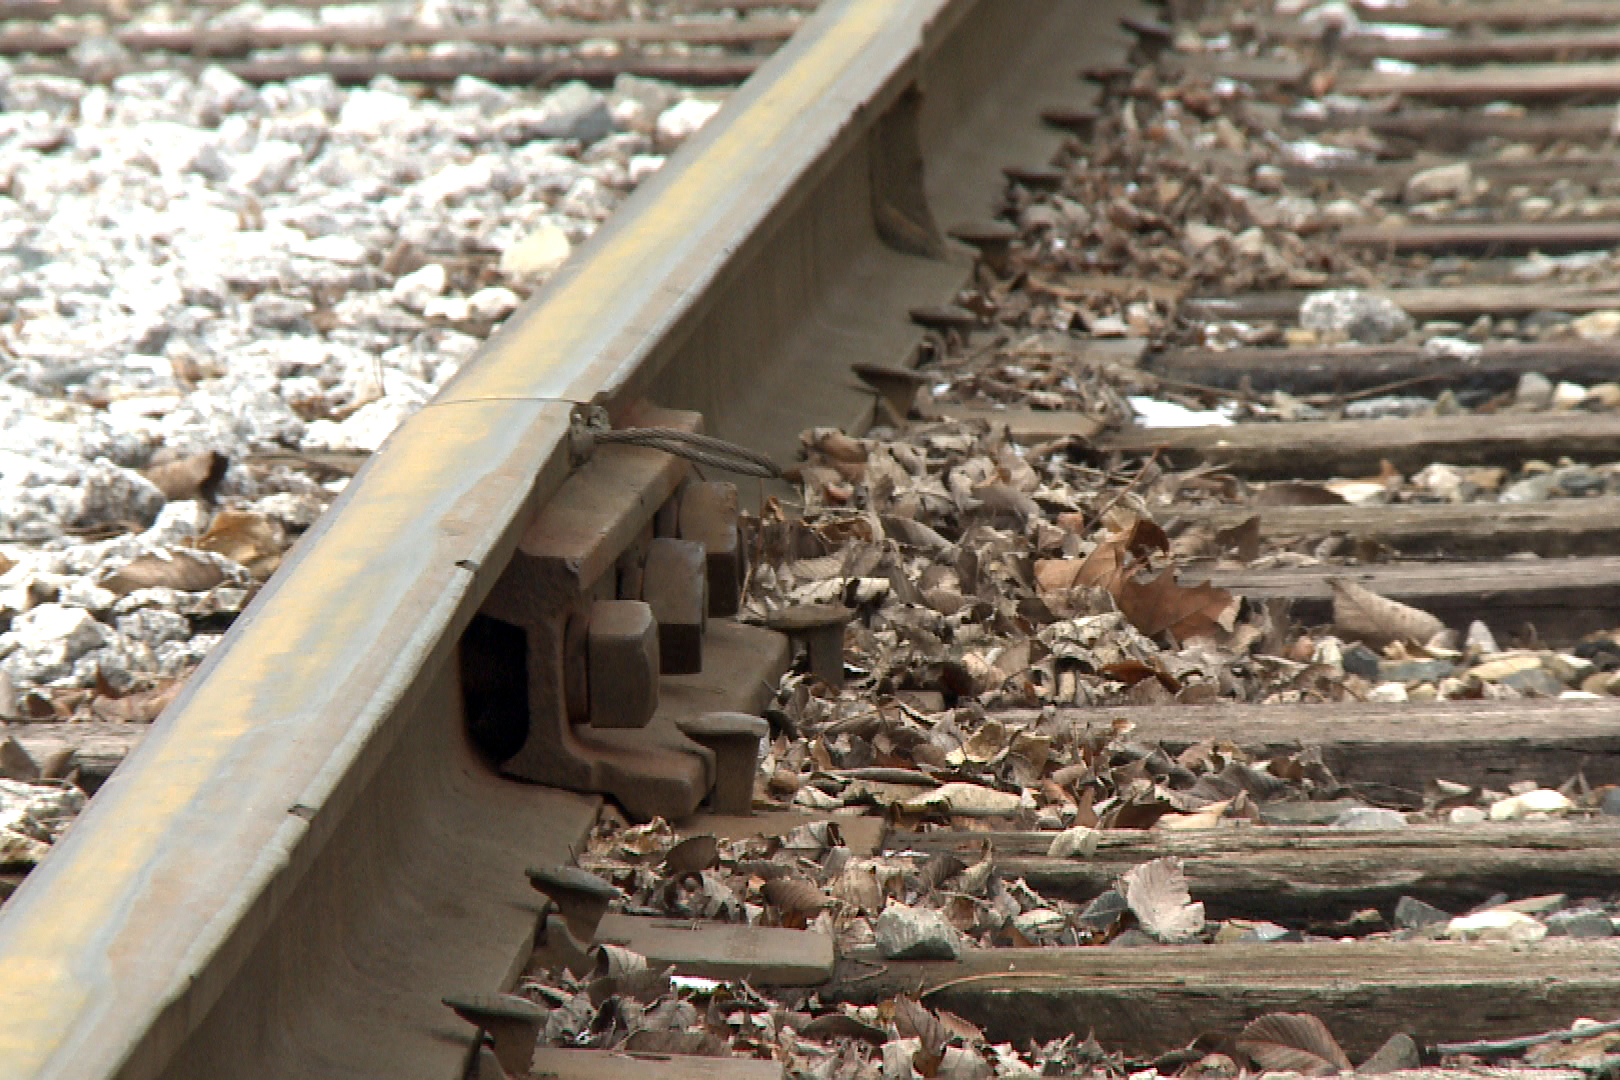 A close-up shot of train tracks.